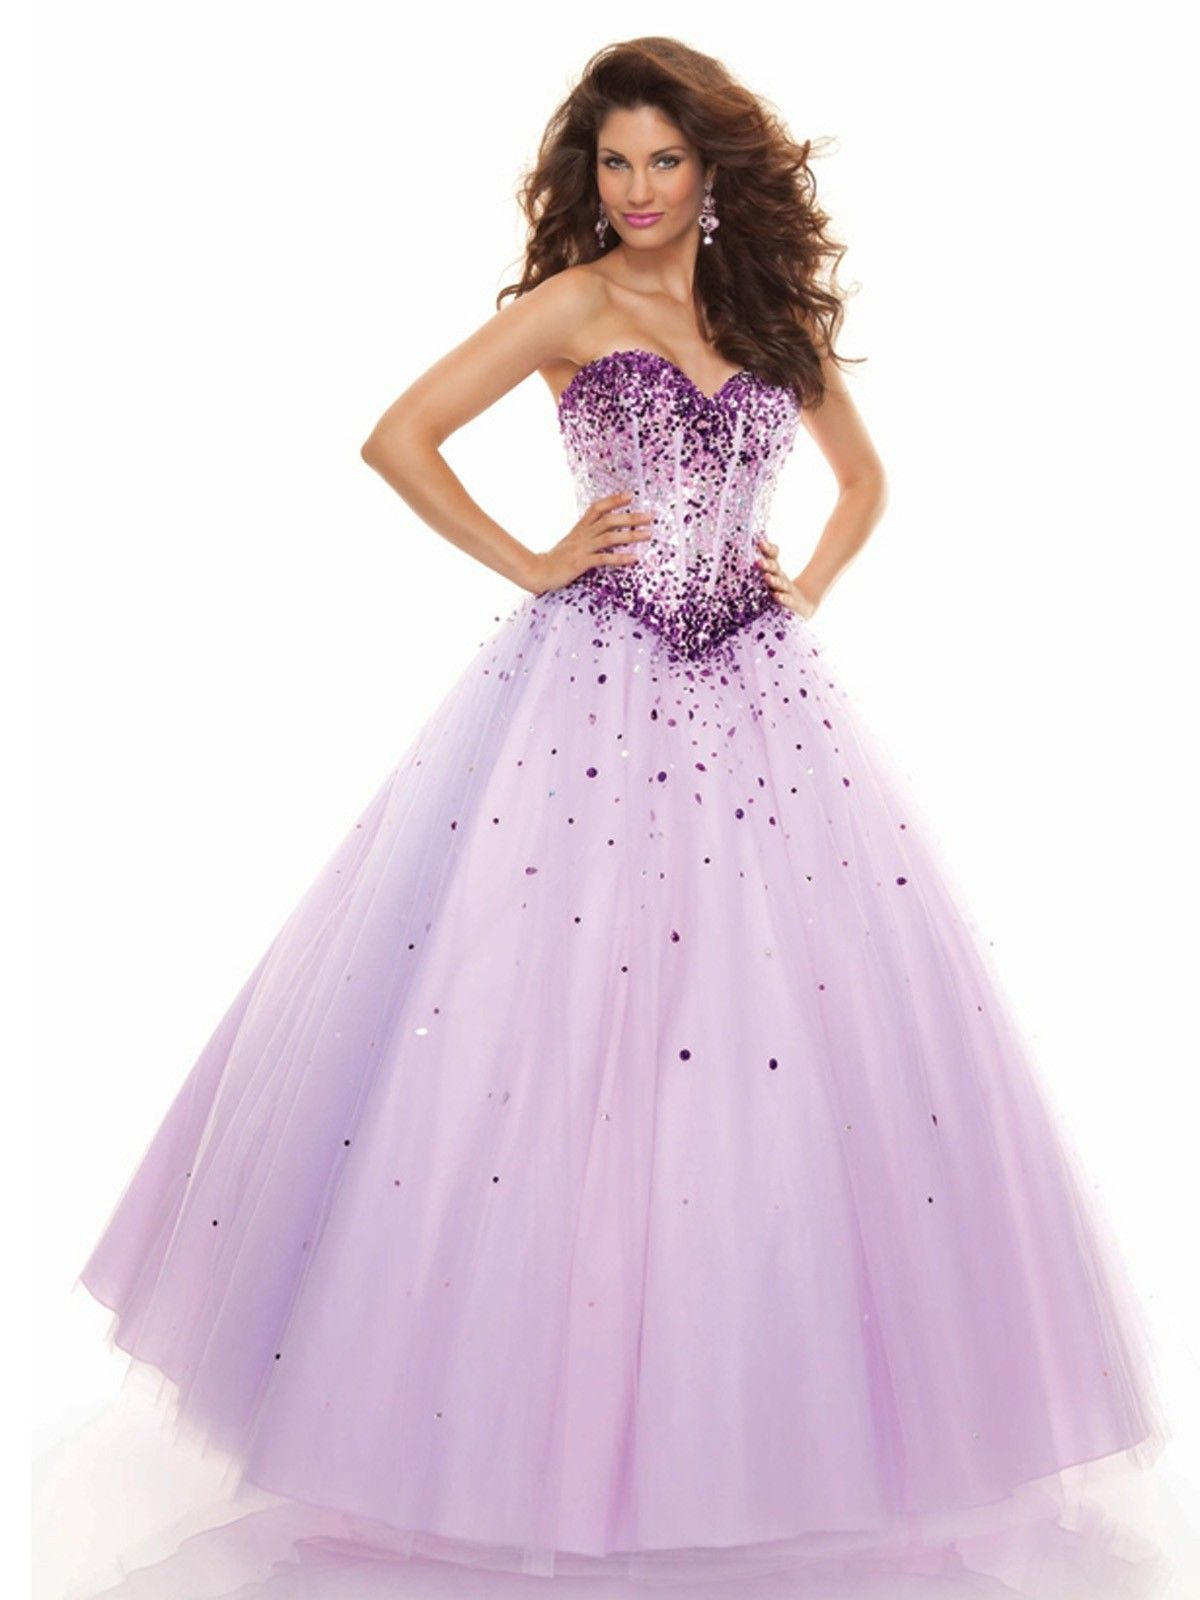 Organza Strapless Sweetheart Ball Gown Long Prom Dress | Dressizer ...